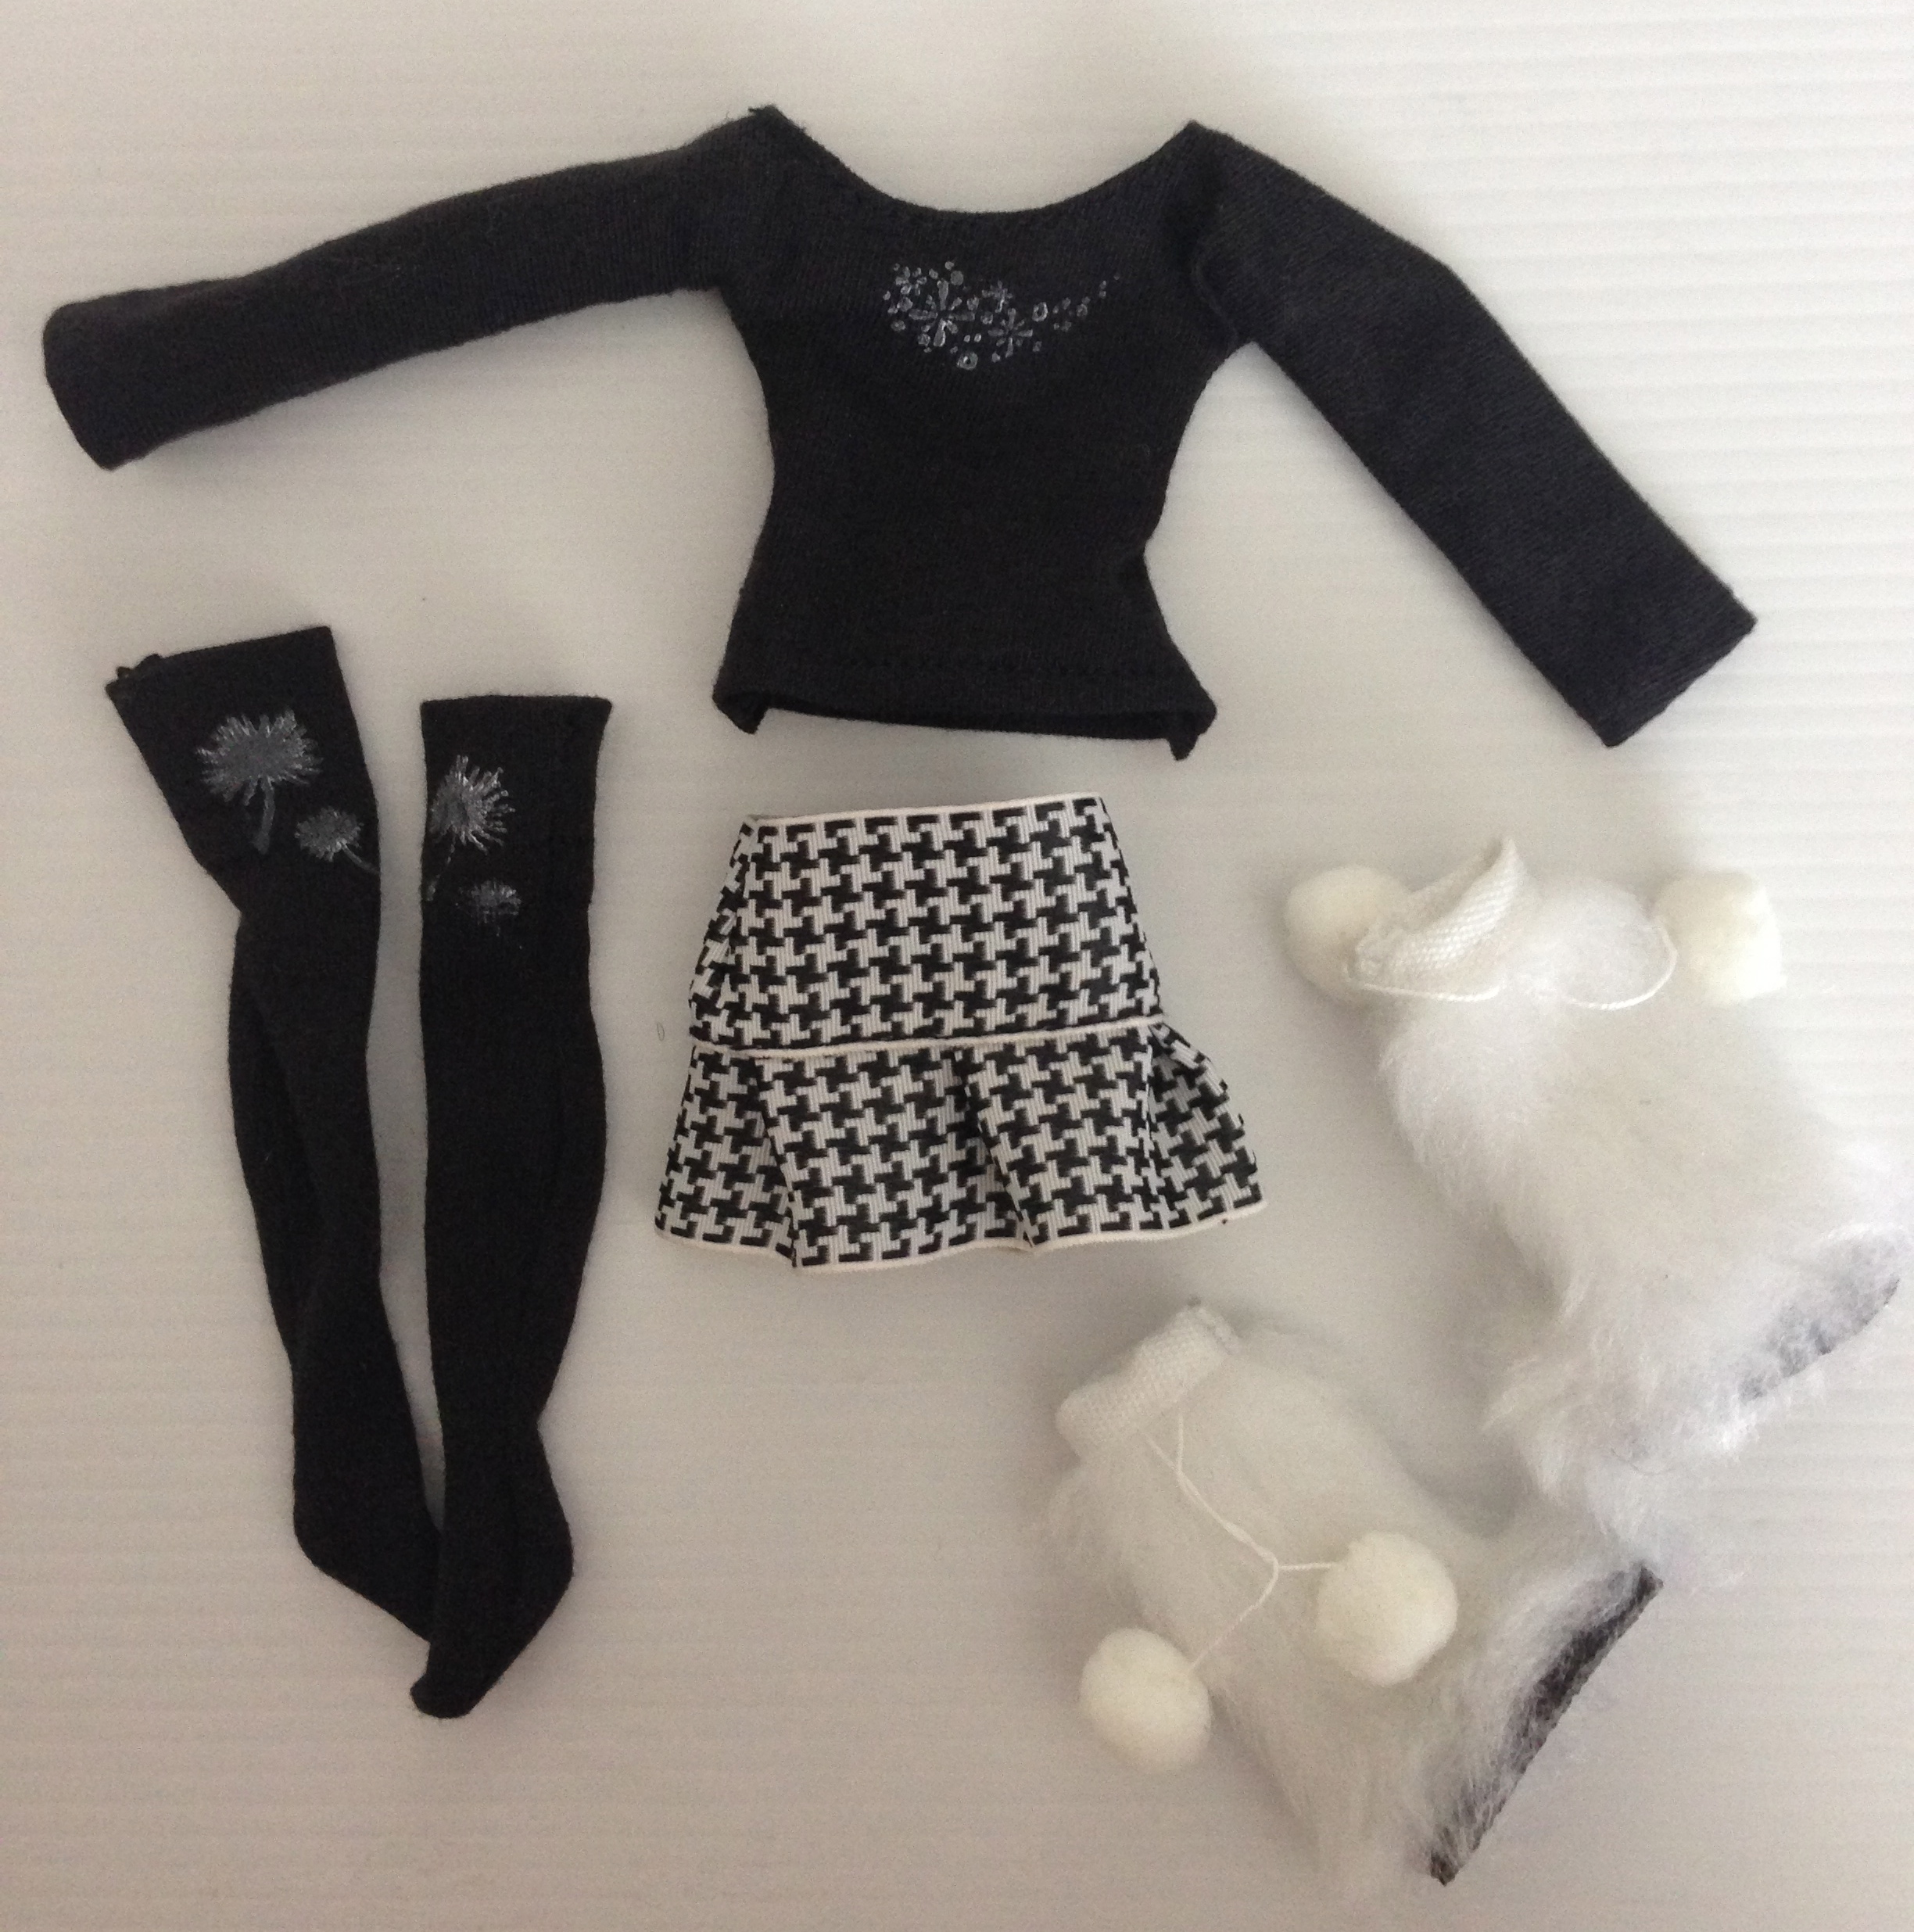 Pullip Outift including boots: $15USD - SOLD